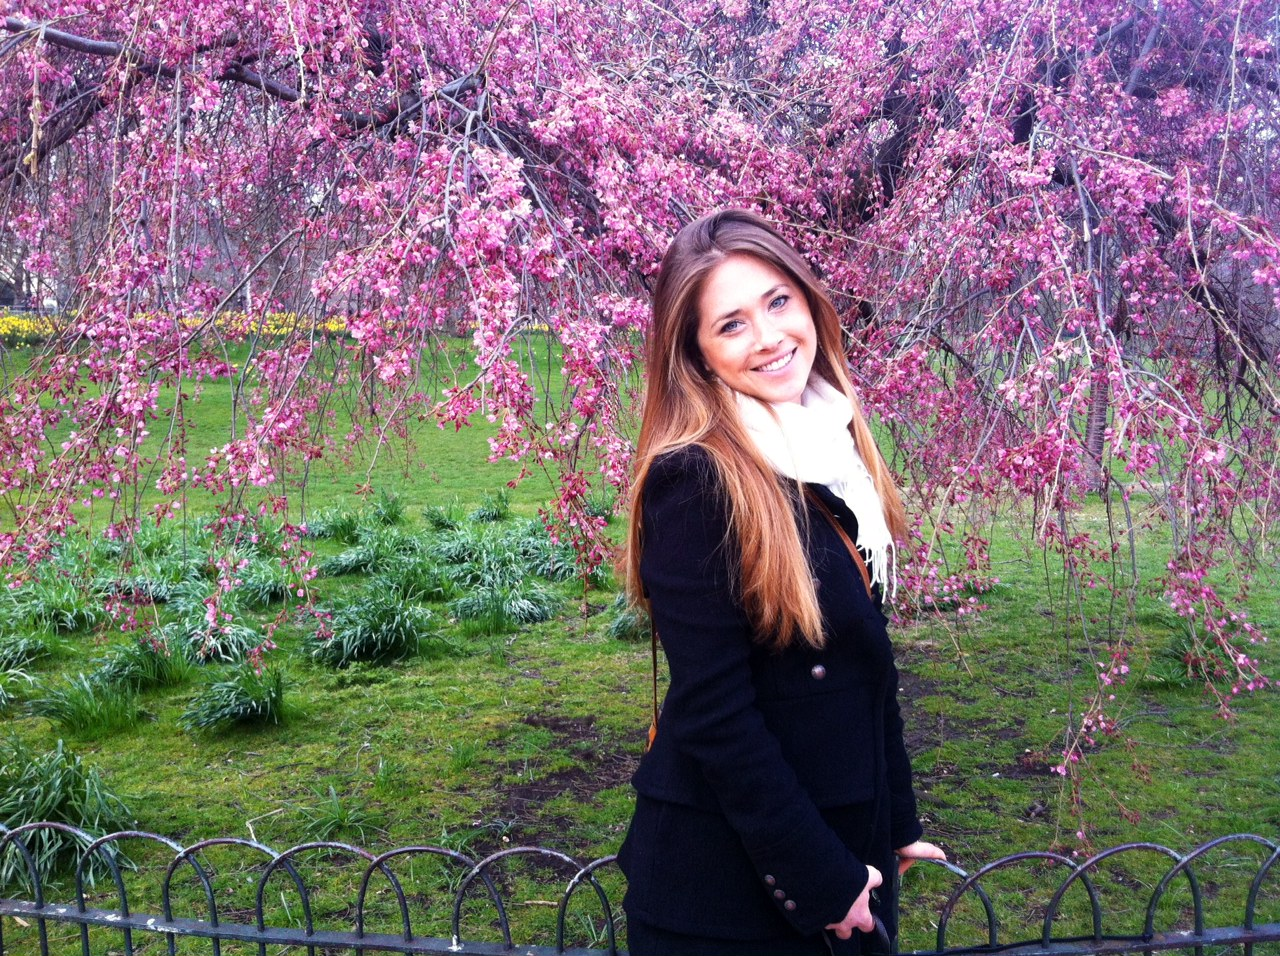 Anna posing in front of a Cherry Blossom tree in Buckingham Palace Gardens